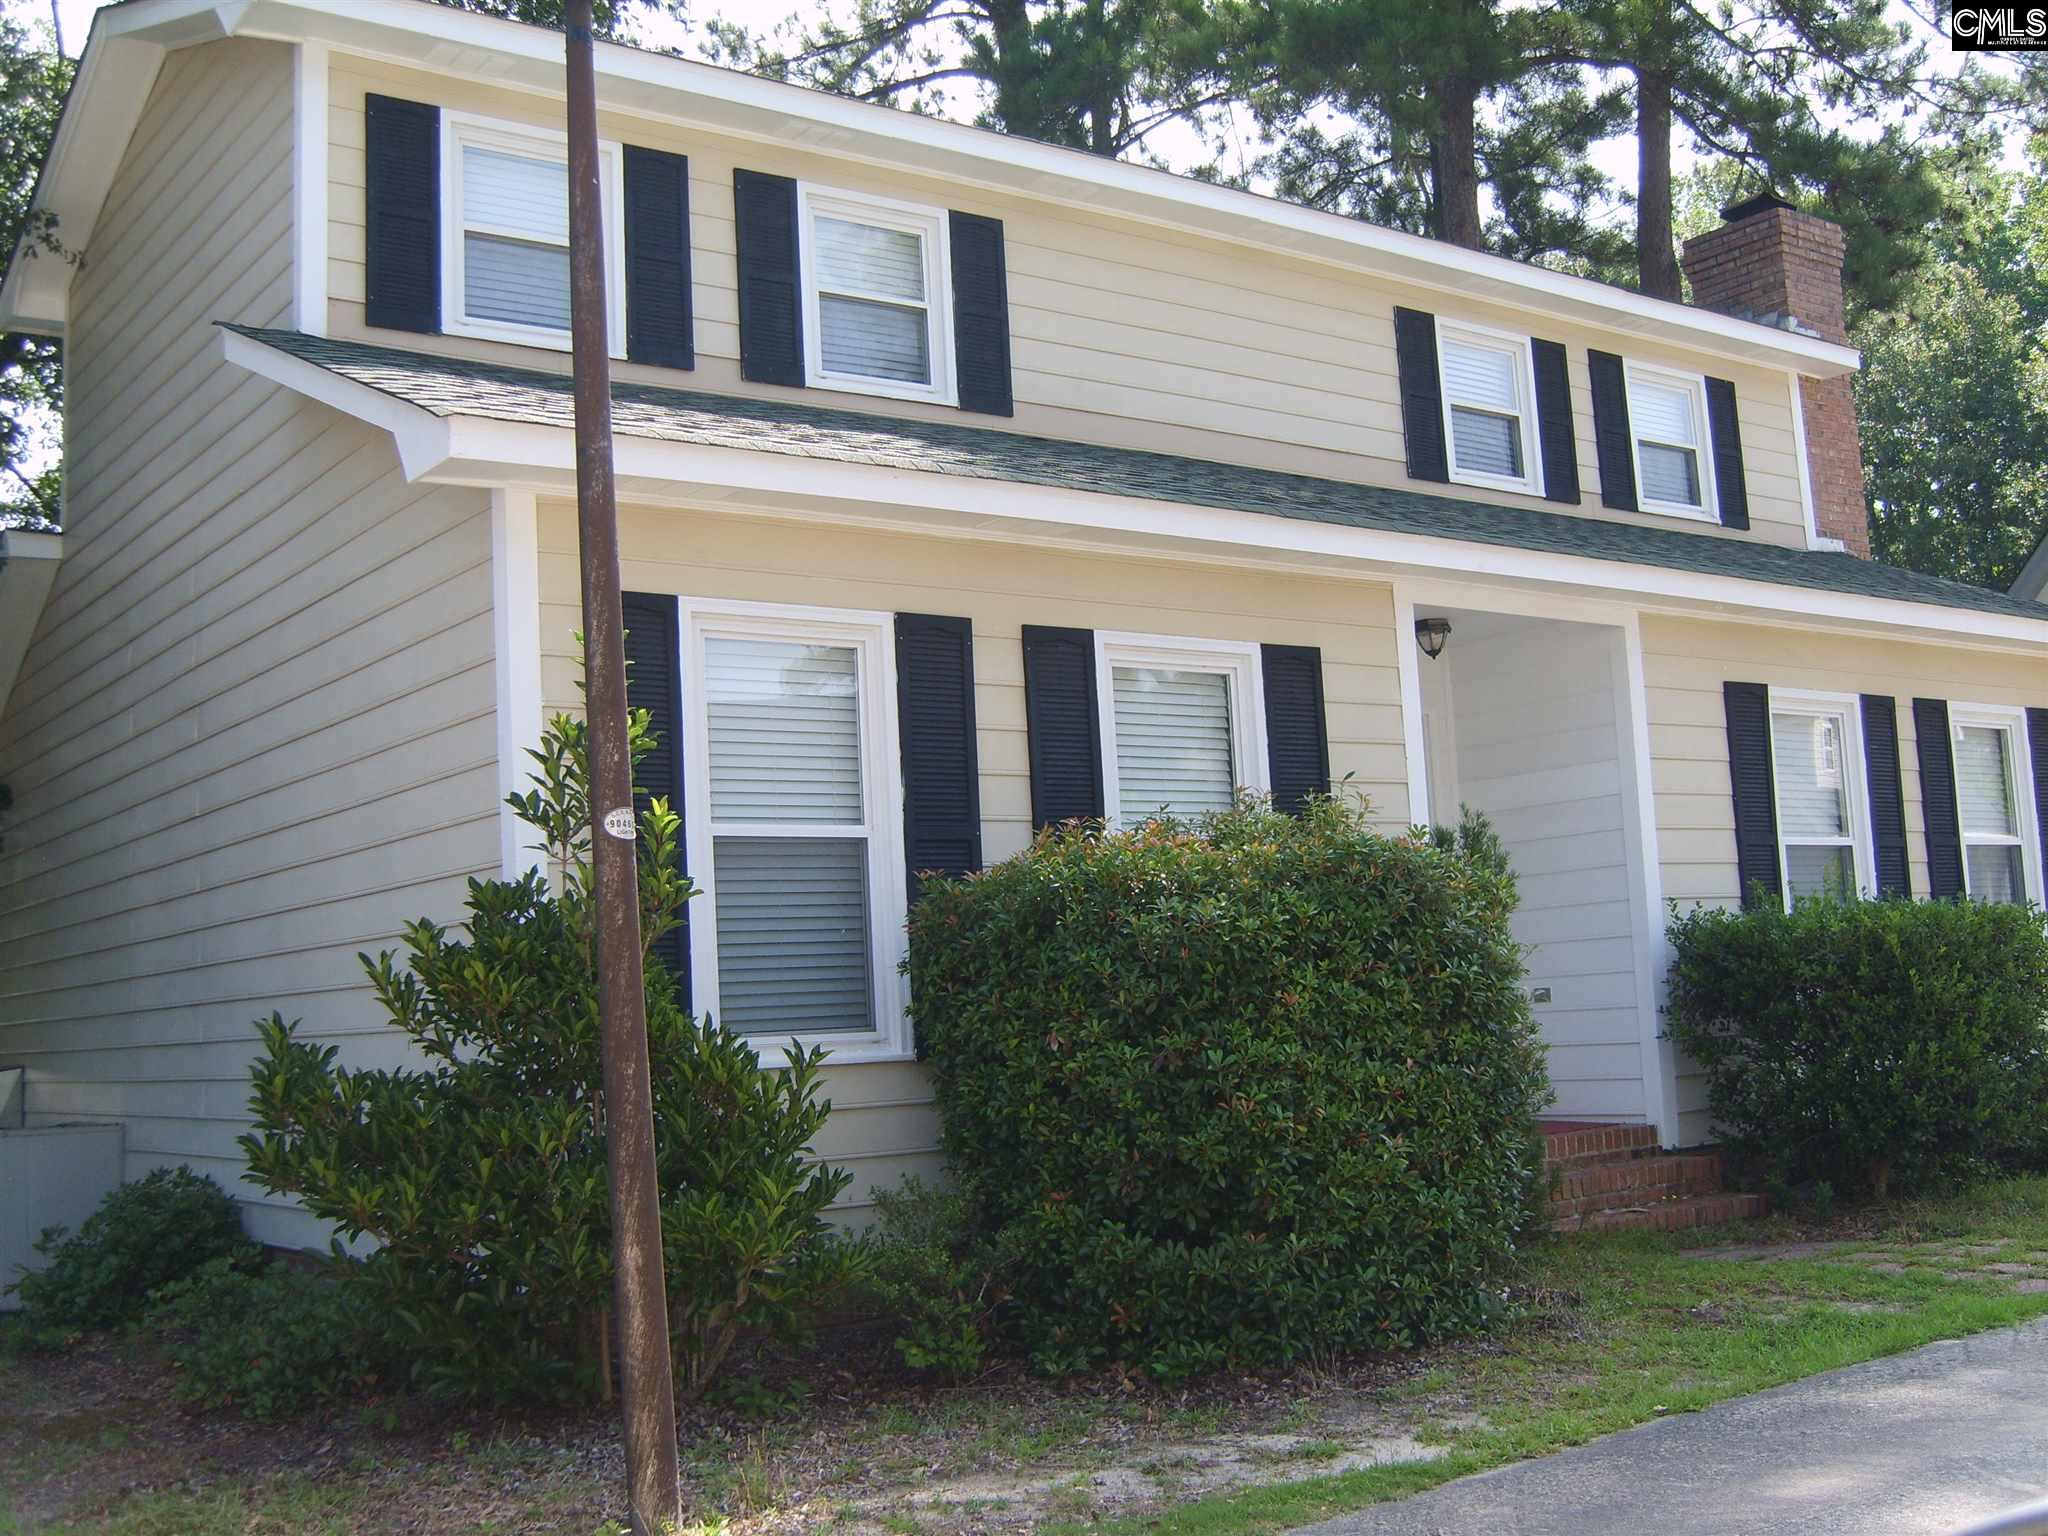 115 S. Village Lexington, SC 29072-9348